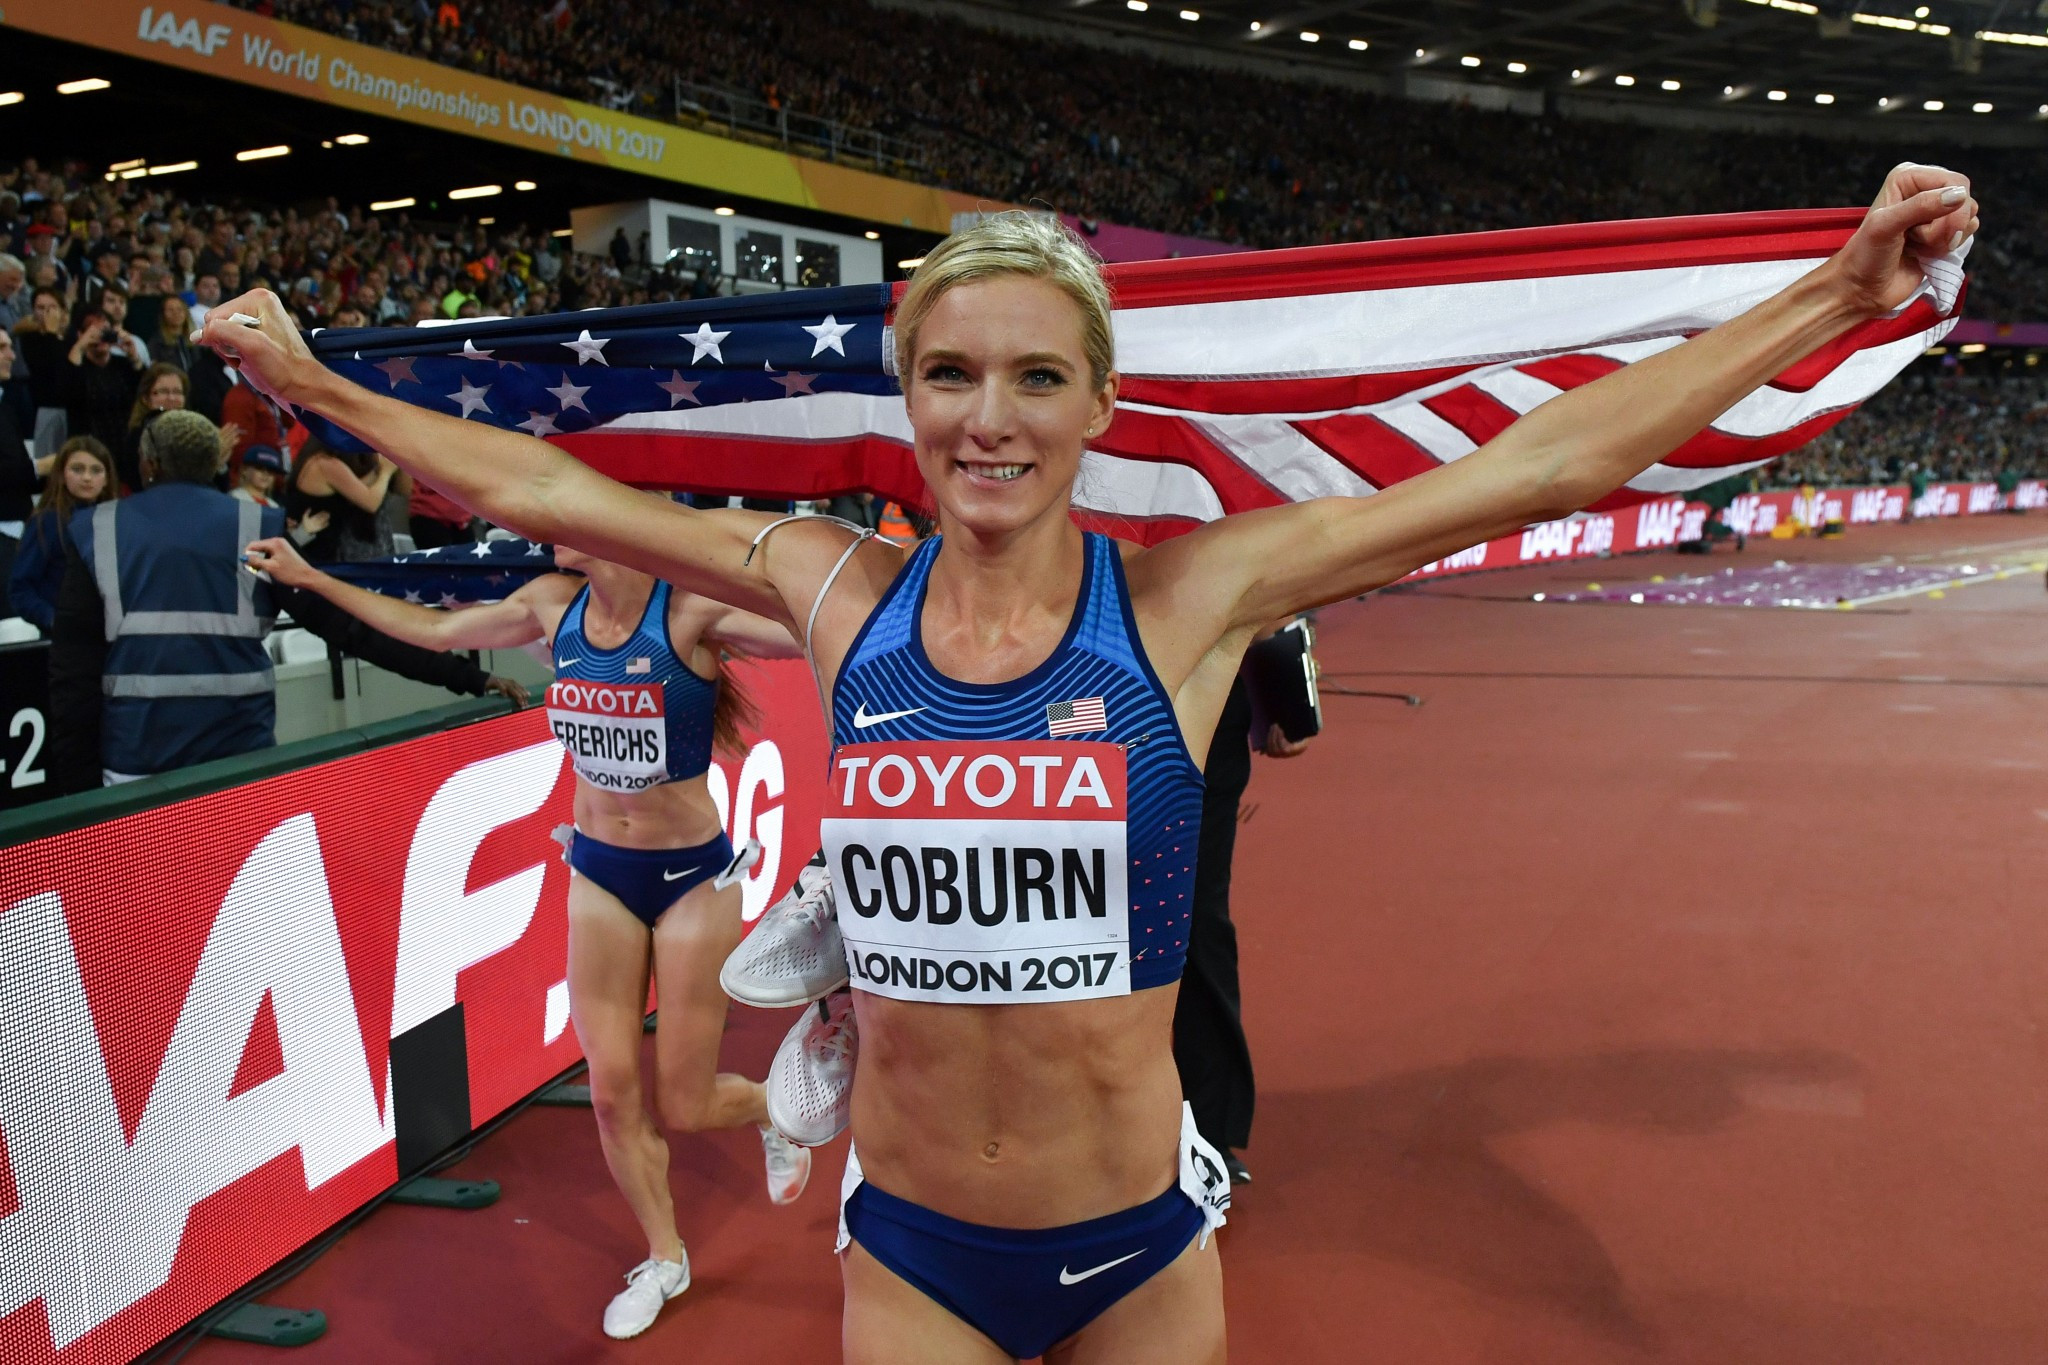 Coburn wins 3,000m steeplechase at IAAF World Championships after Kenyan misses water jump